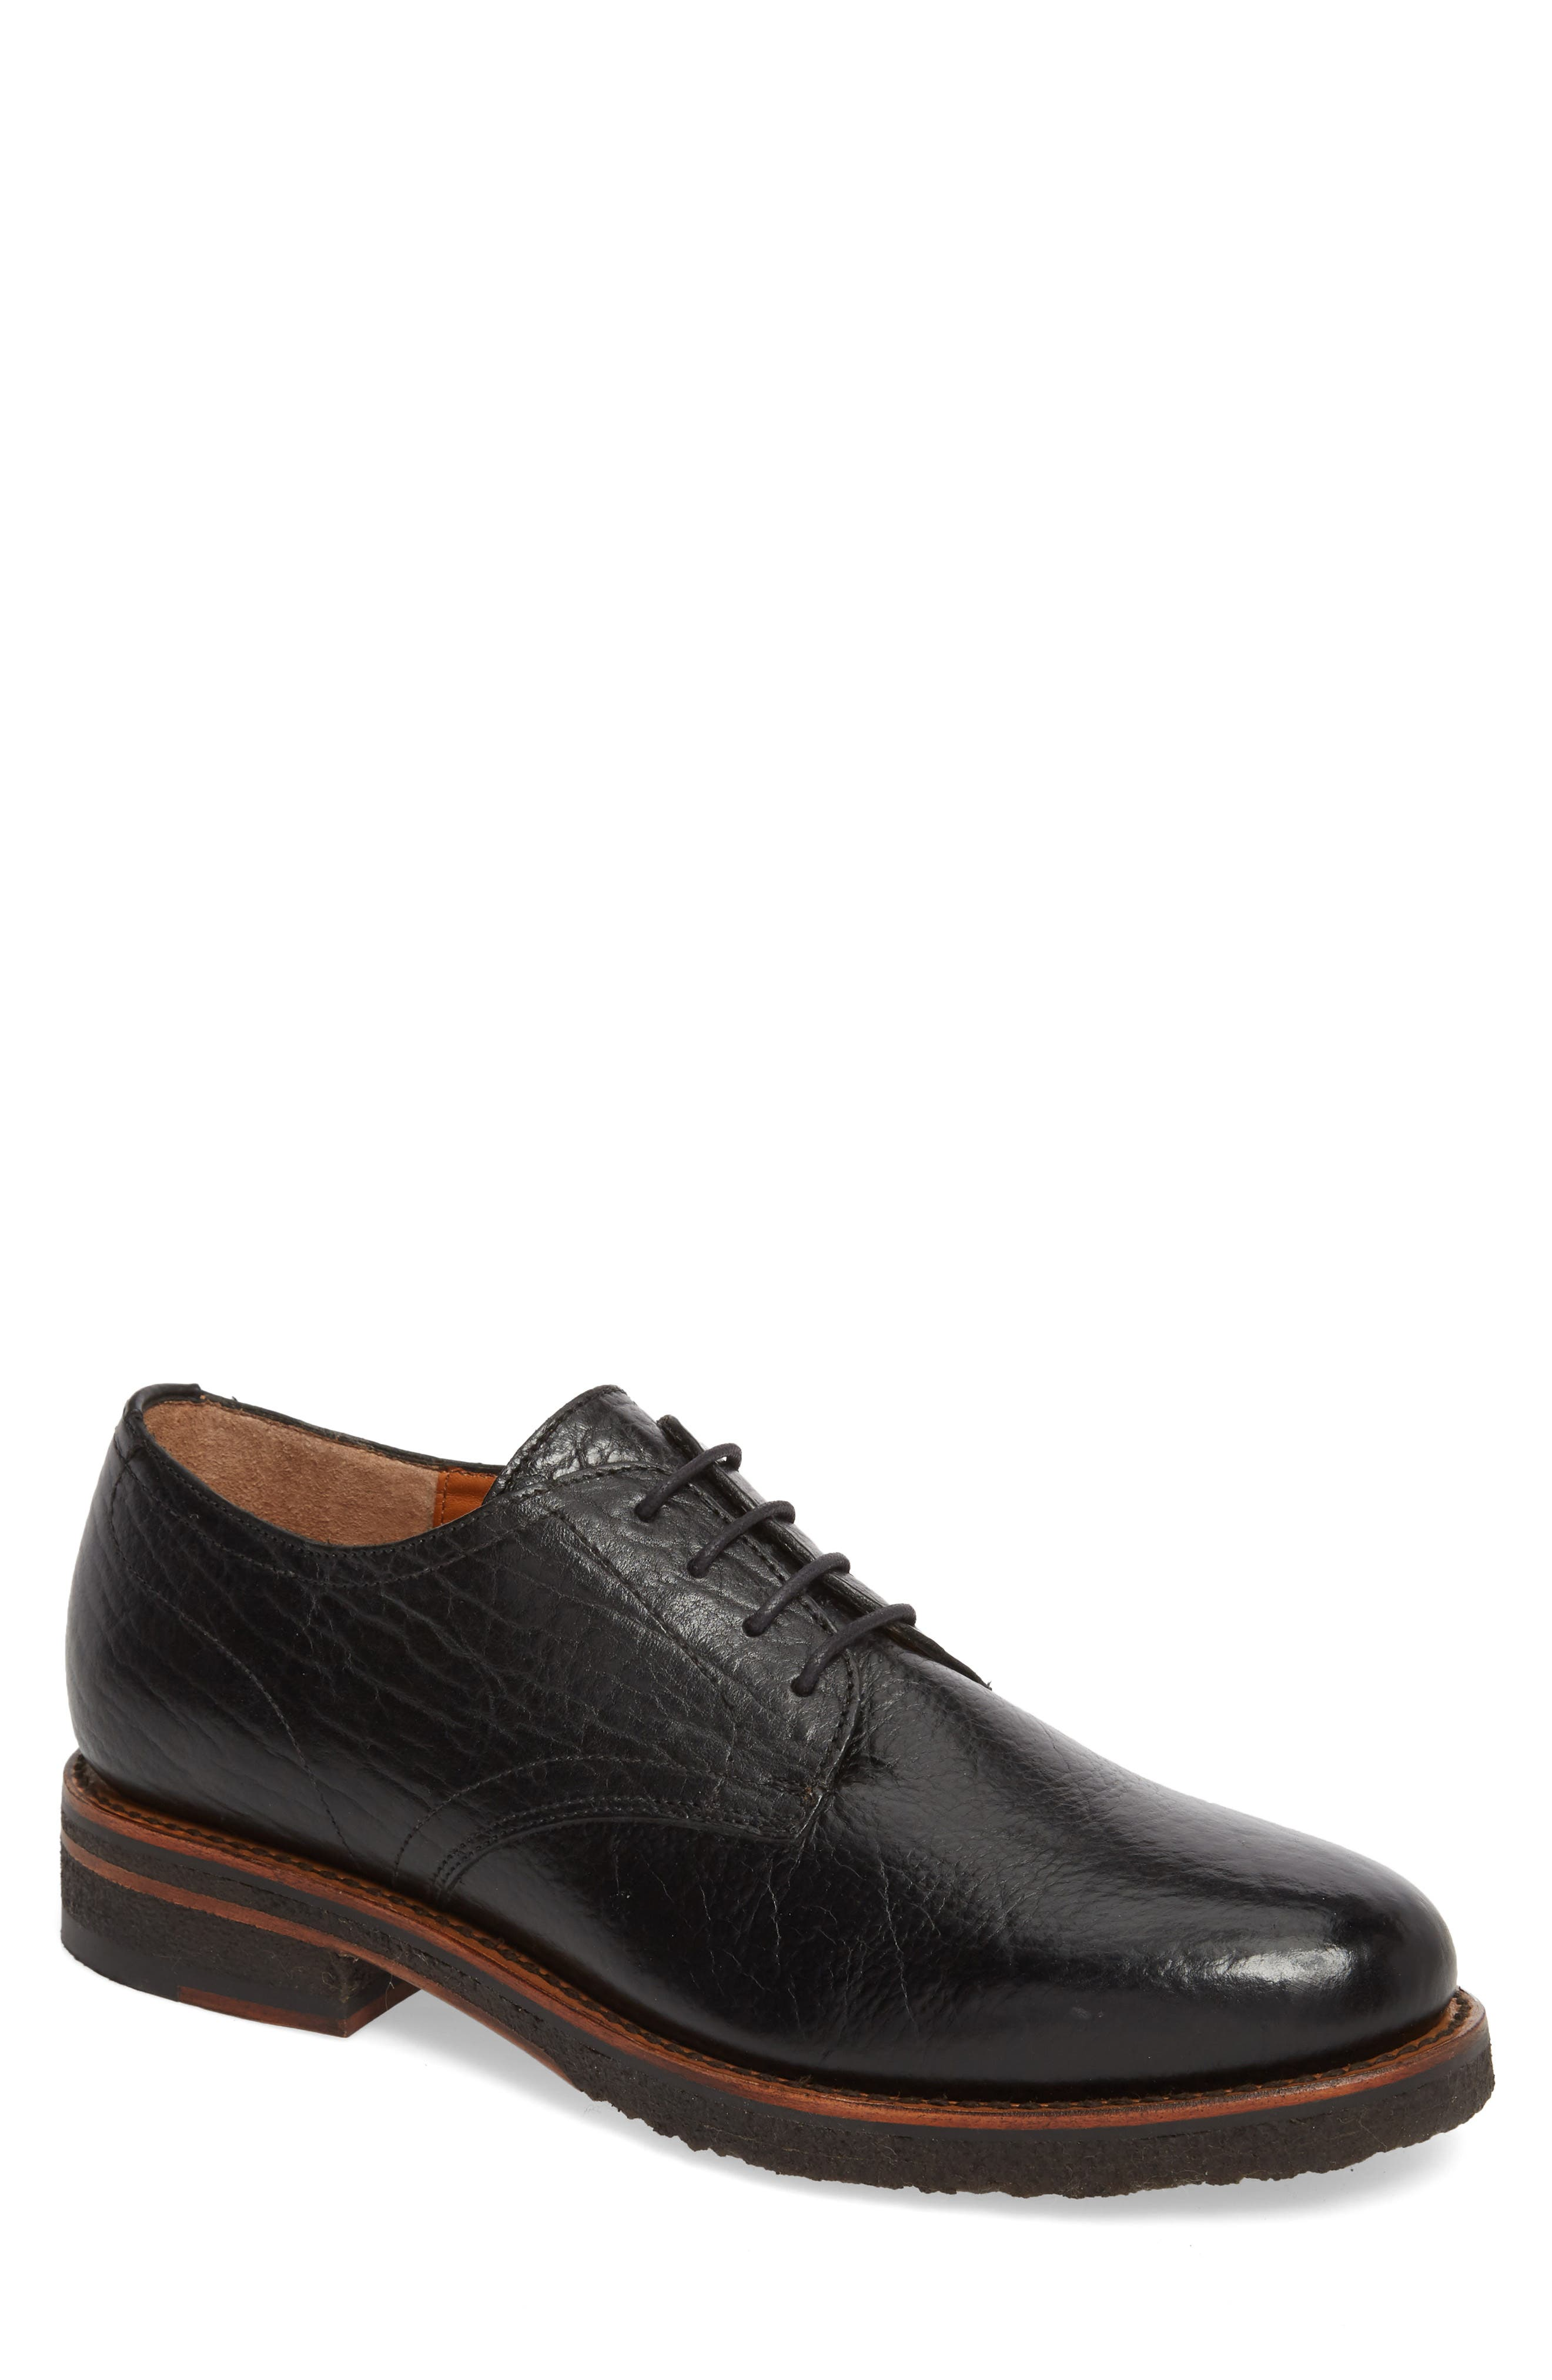 Two24 by Ariat Hawthorne Plain Toe Derby,                             Main thumbnail 1, color,                             001